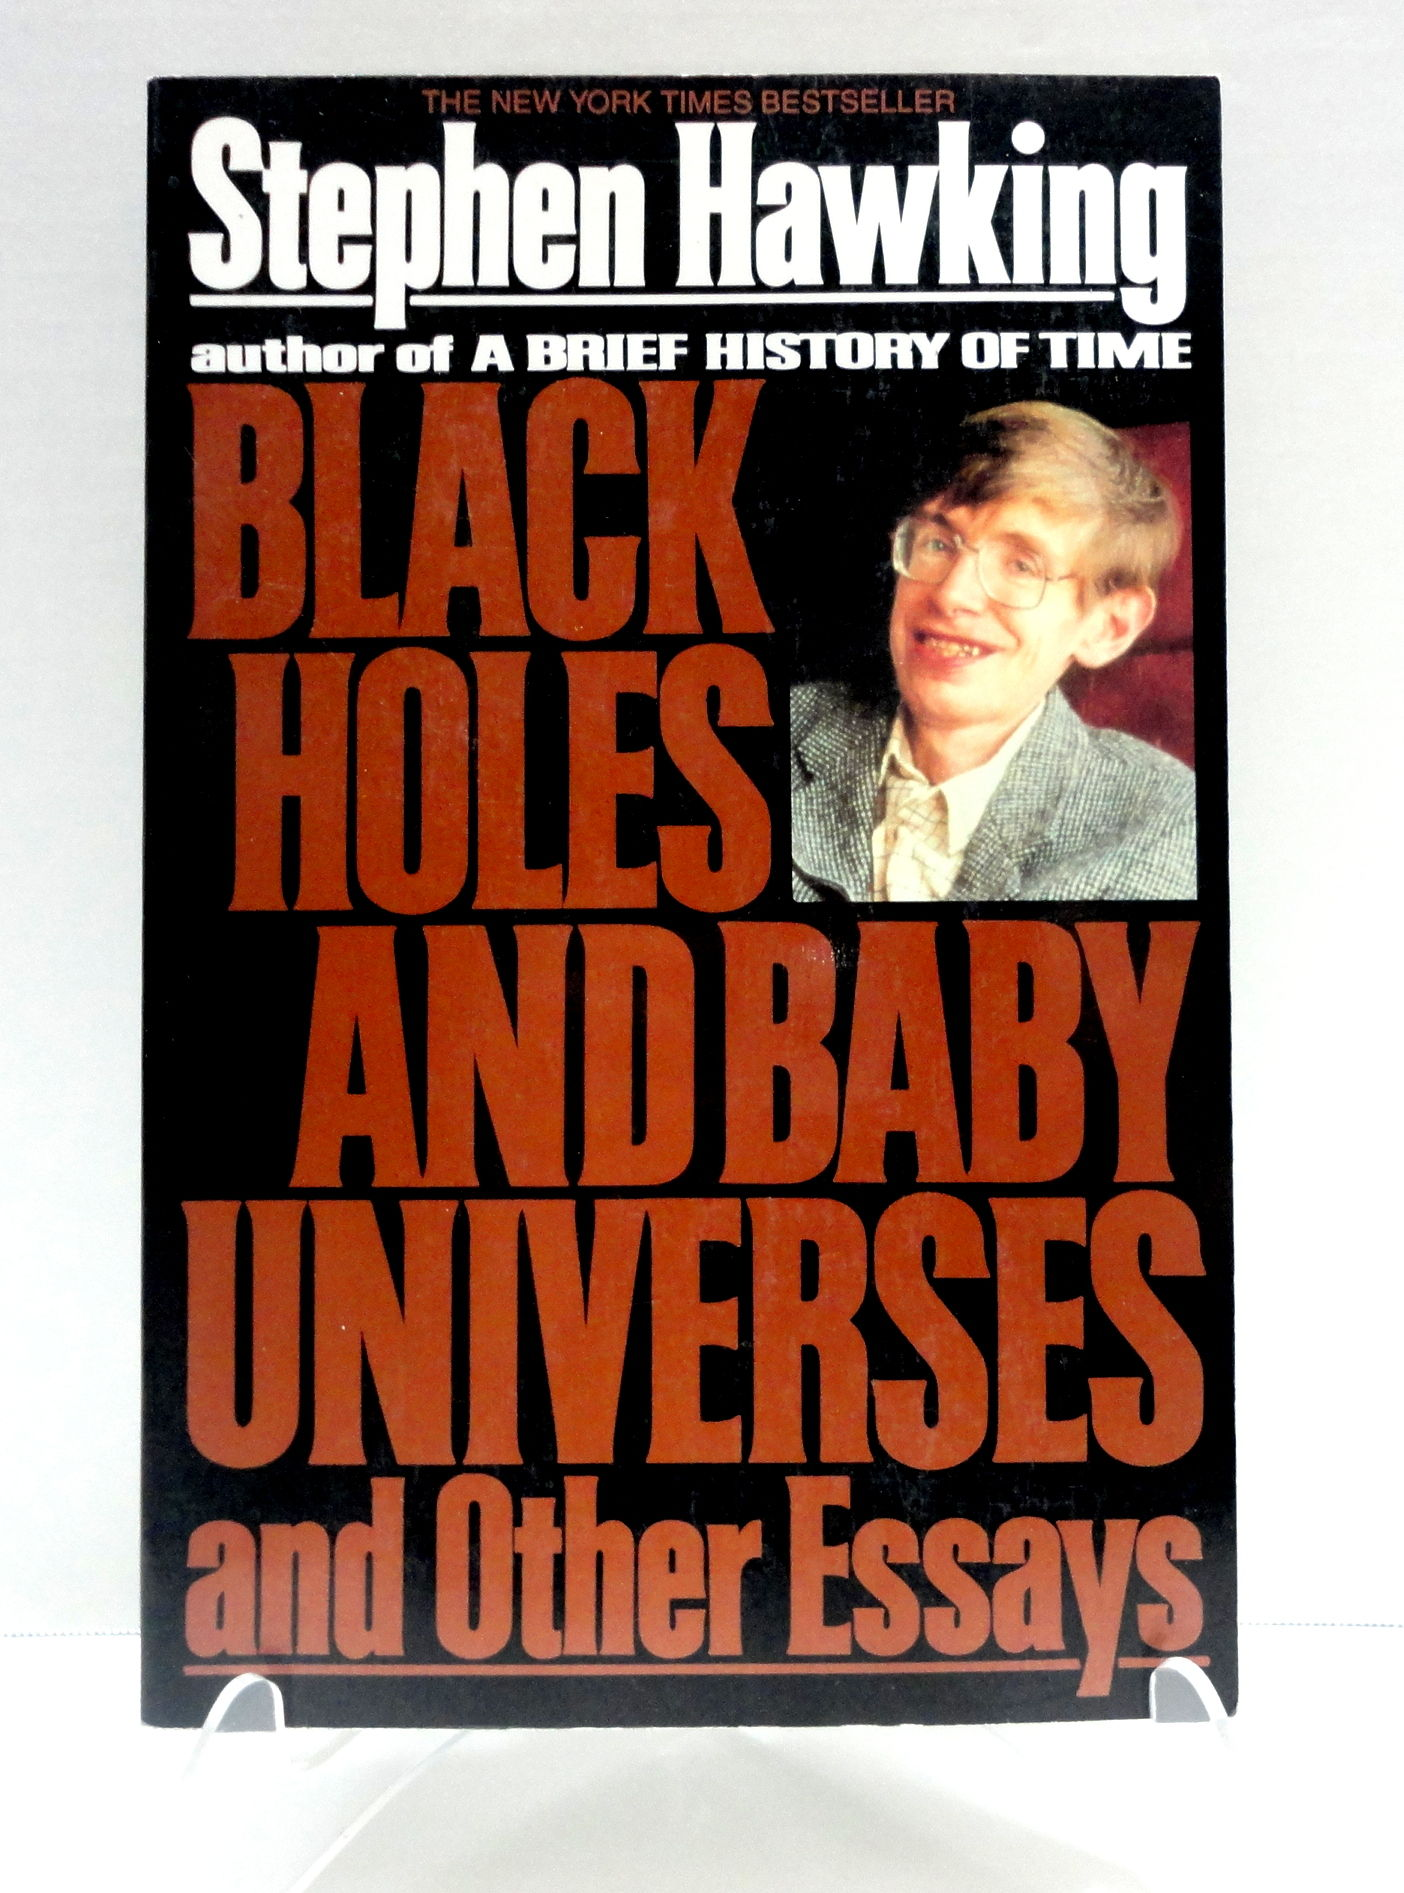 012 Essay Example X Black Holes And Baby Universes Other Unique Essays Review Ebook Free Download Amazon Full